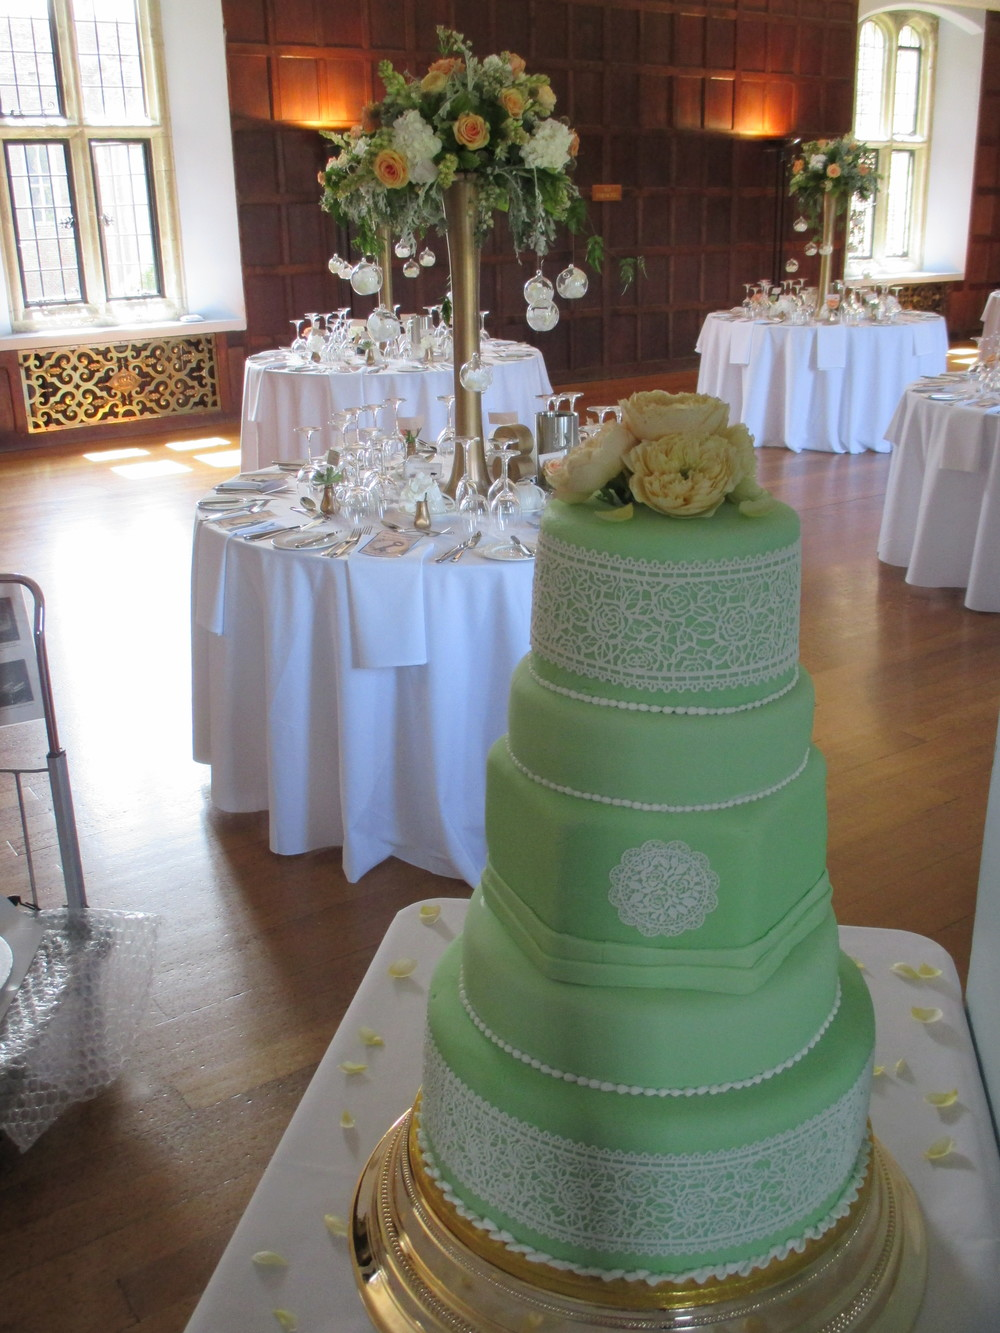 Weddings At Herstmonceux Castle The Venue Of The Summer She Bakes